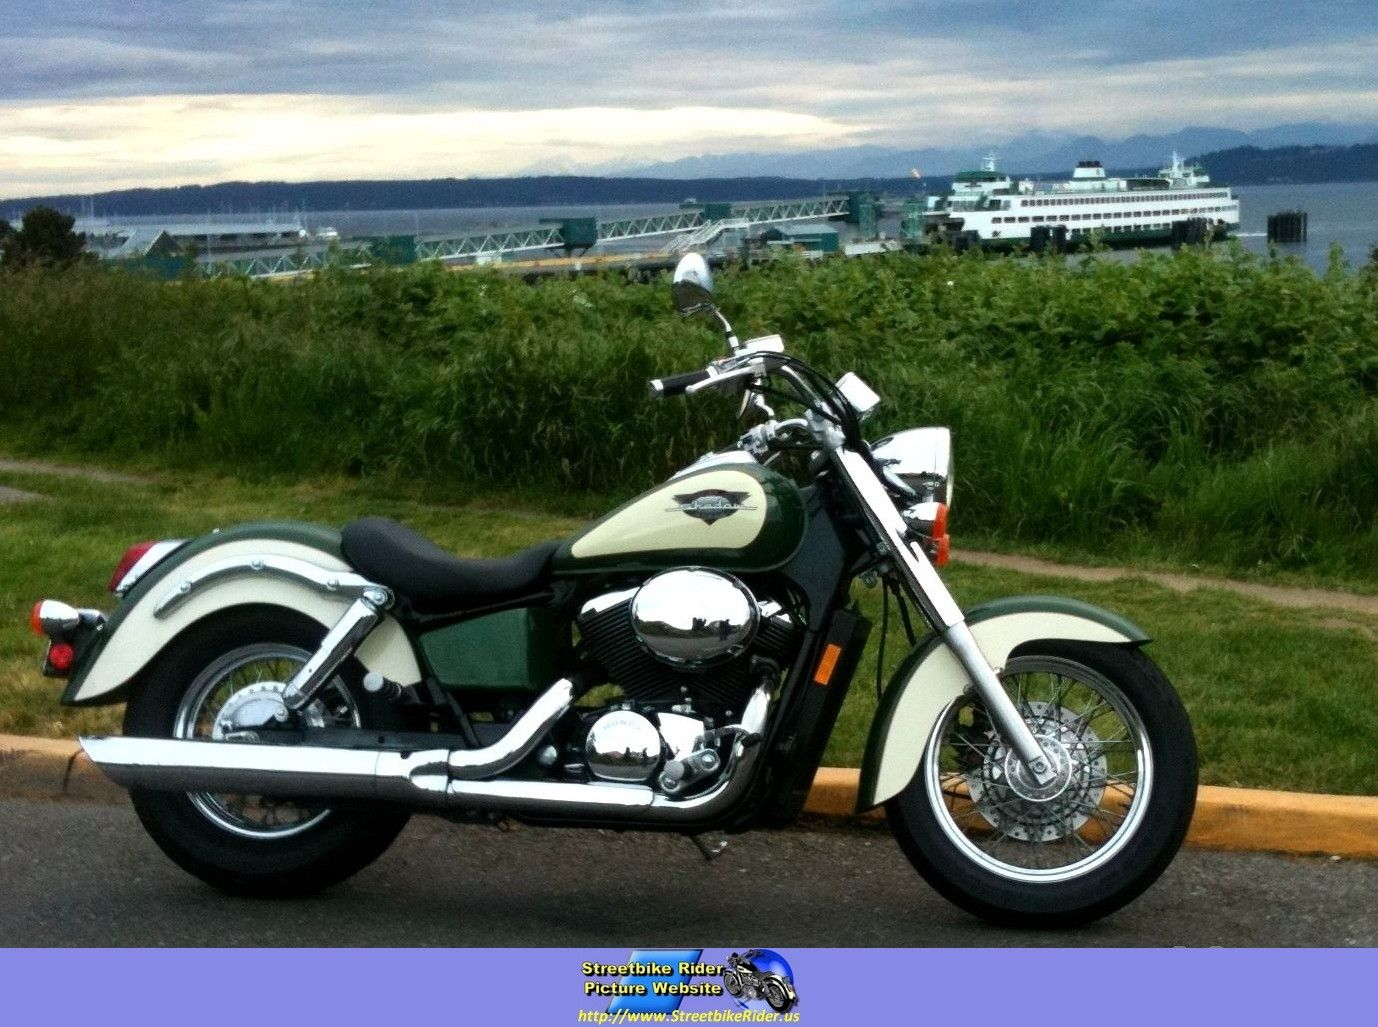 hight resolution of 1999 honda shadow 750 ace green another view of my favorite bike